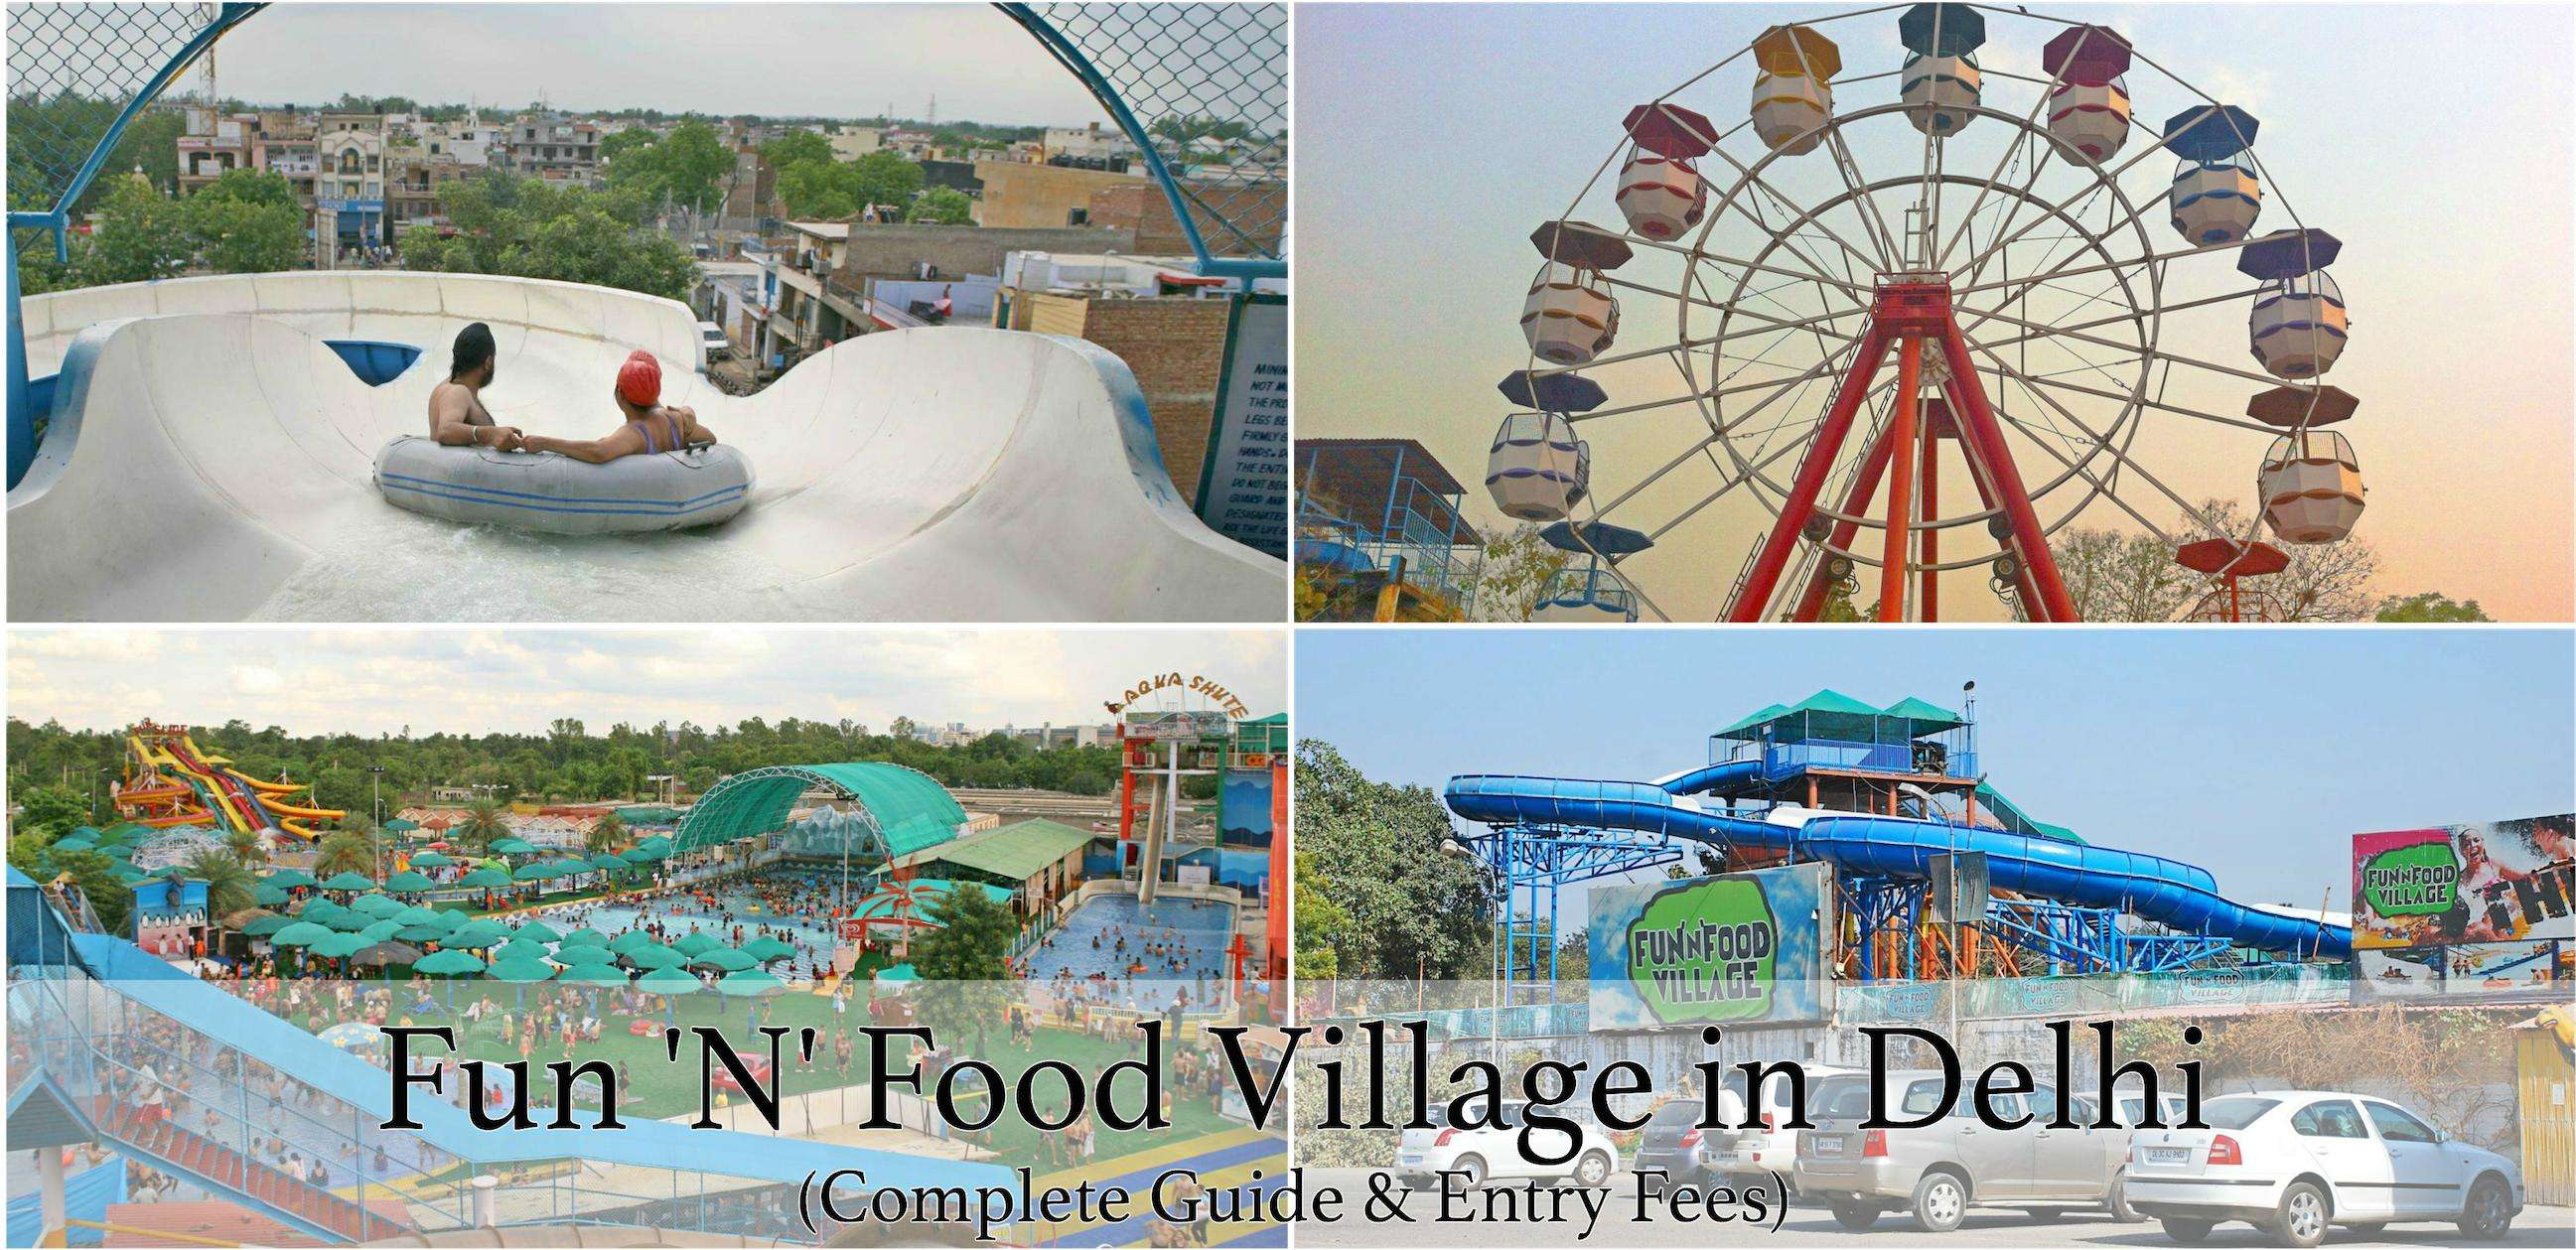 Fun n Food Village delhi.jpg